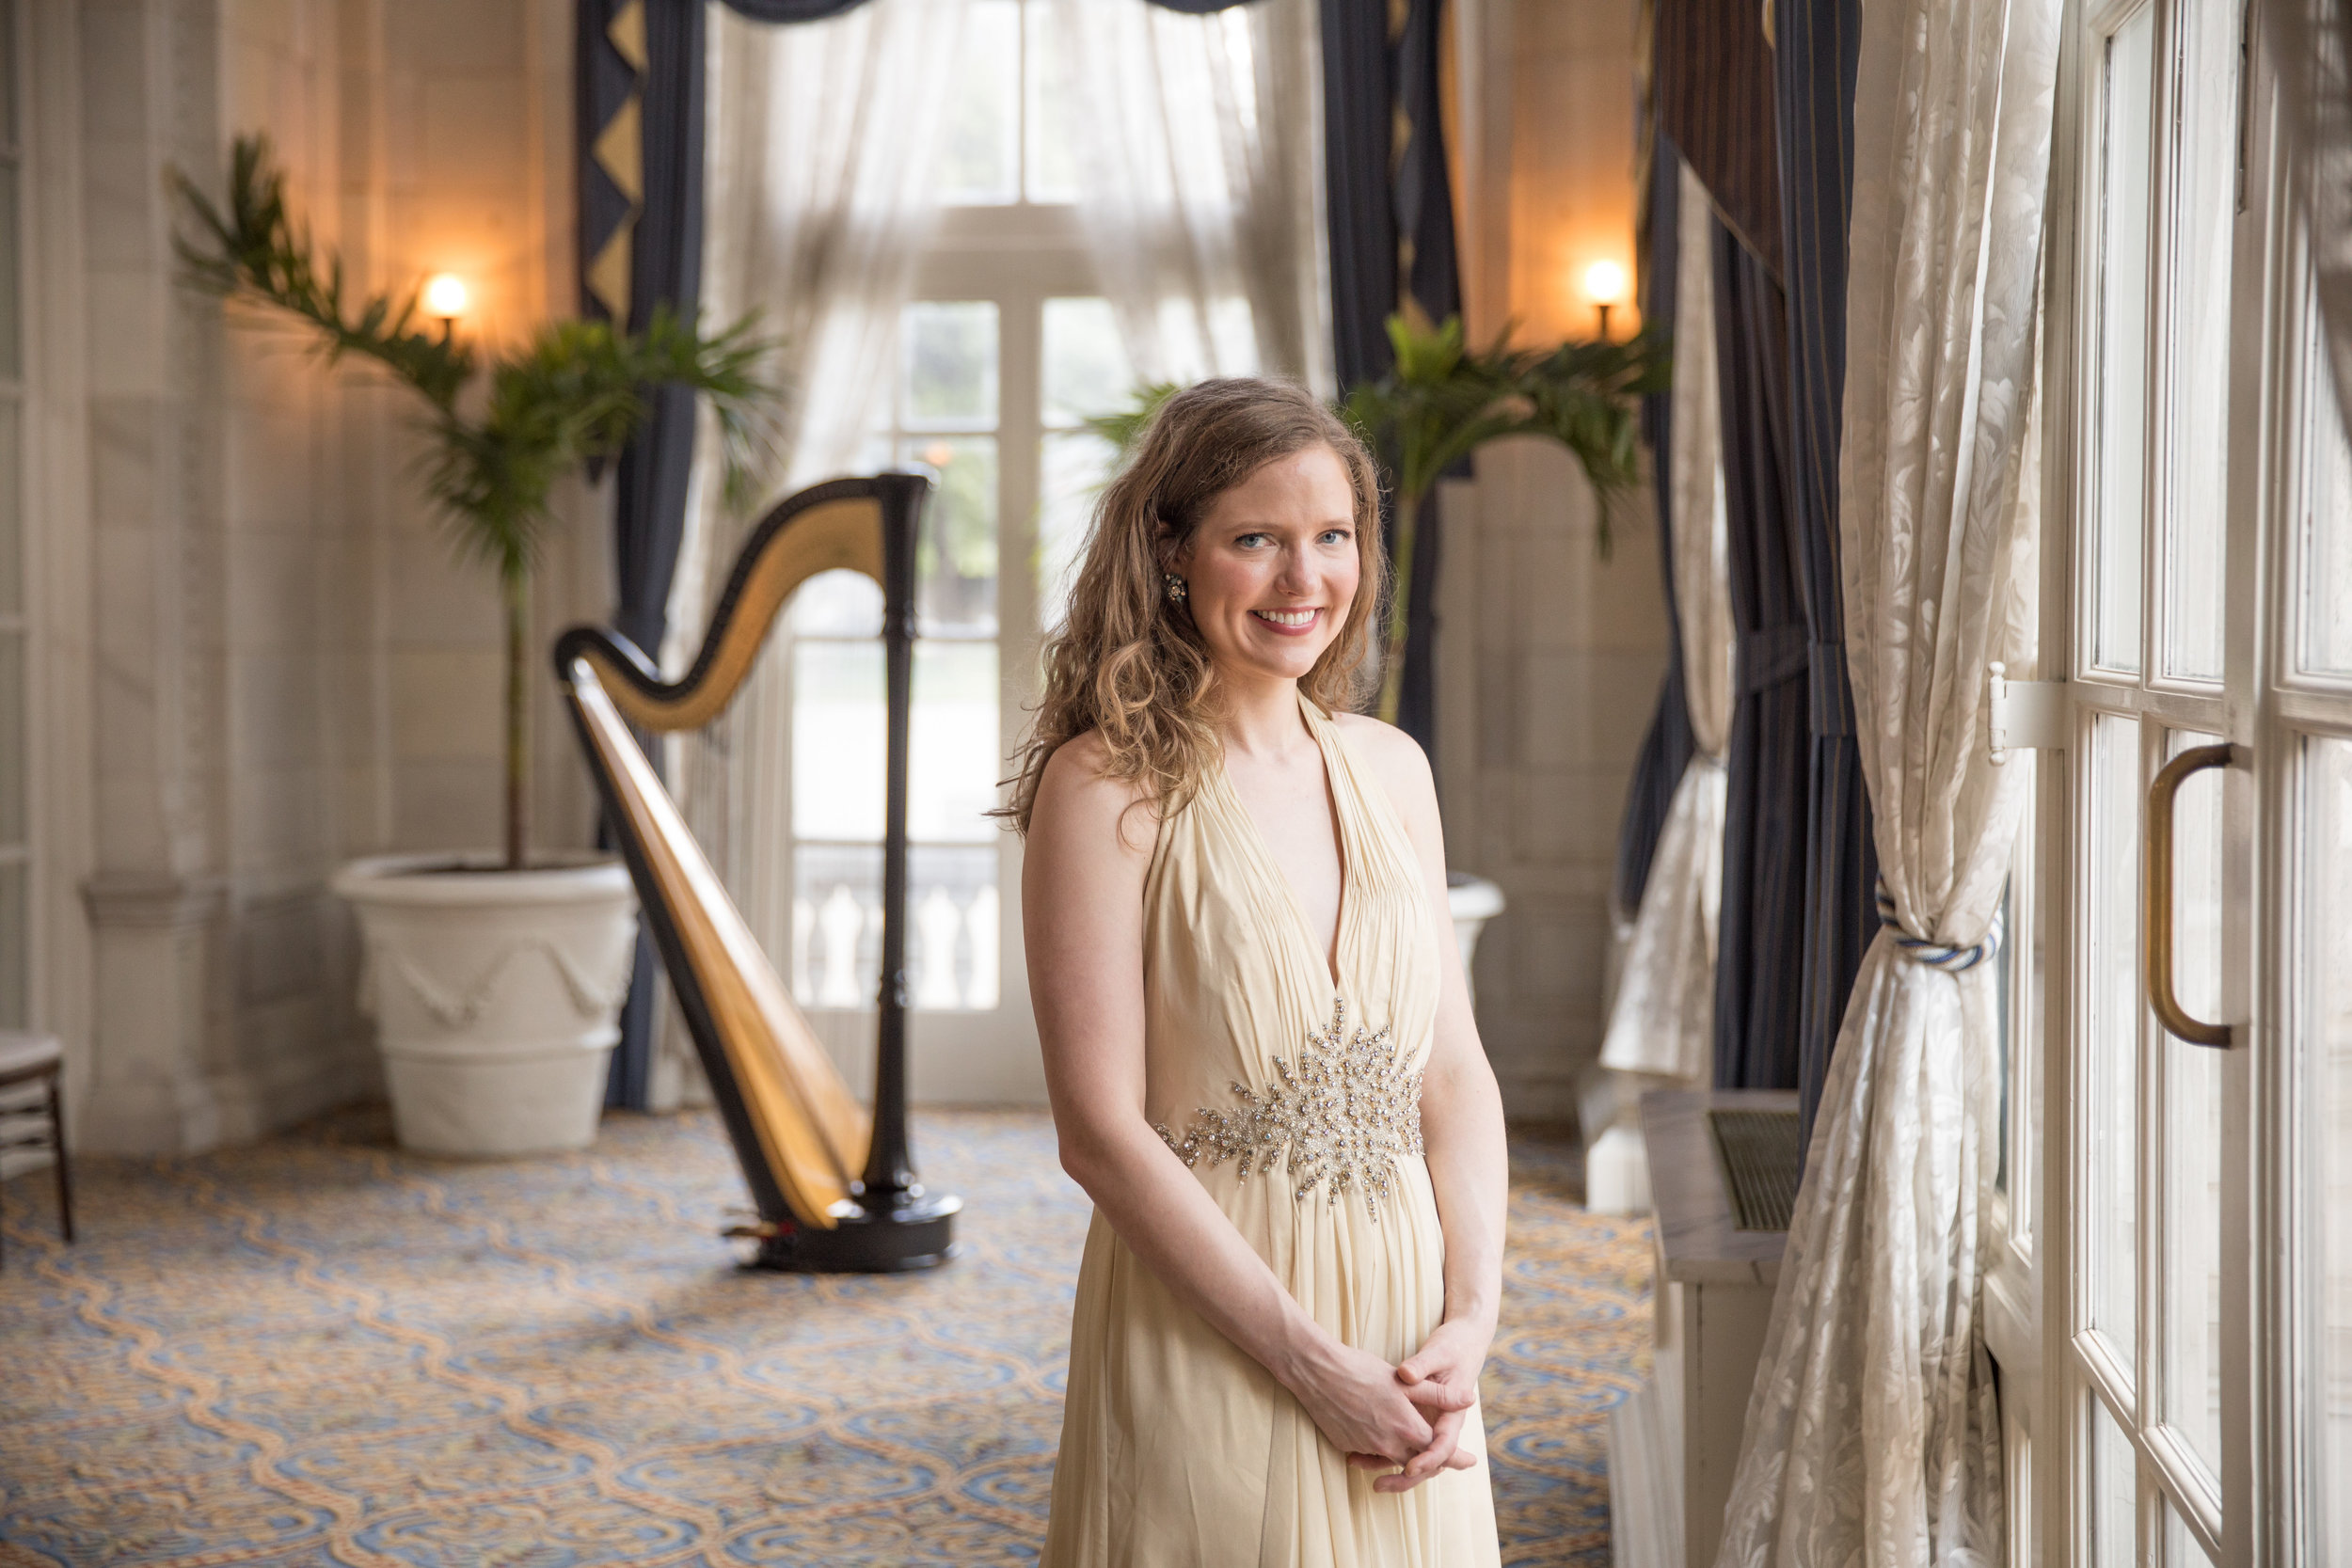 Hi, I'm Dr. Agnes Bartek- - Founder and owner of The Harp Salon. I help elegant brides, like you, create the romantic wedding of their dreams by providing beautiful harp music for their wedding ceremony.